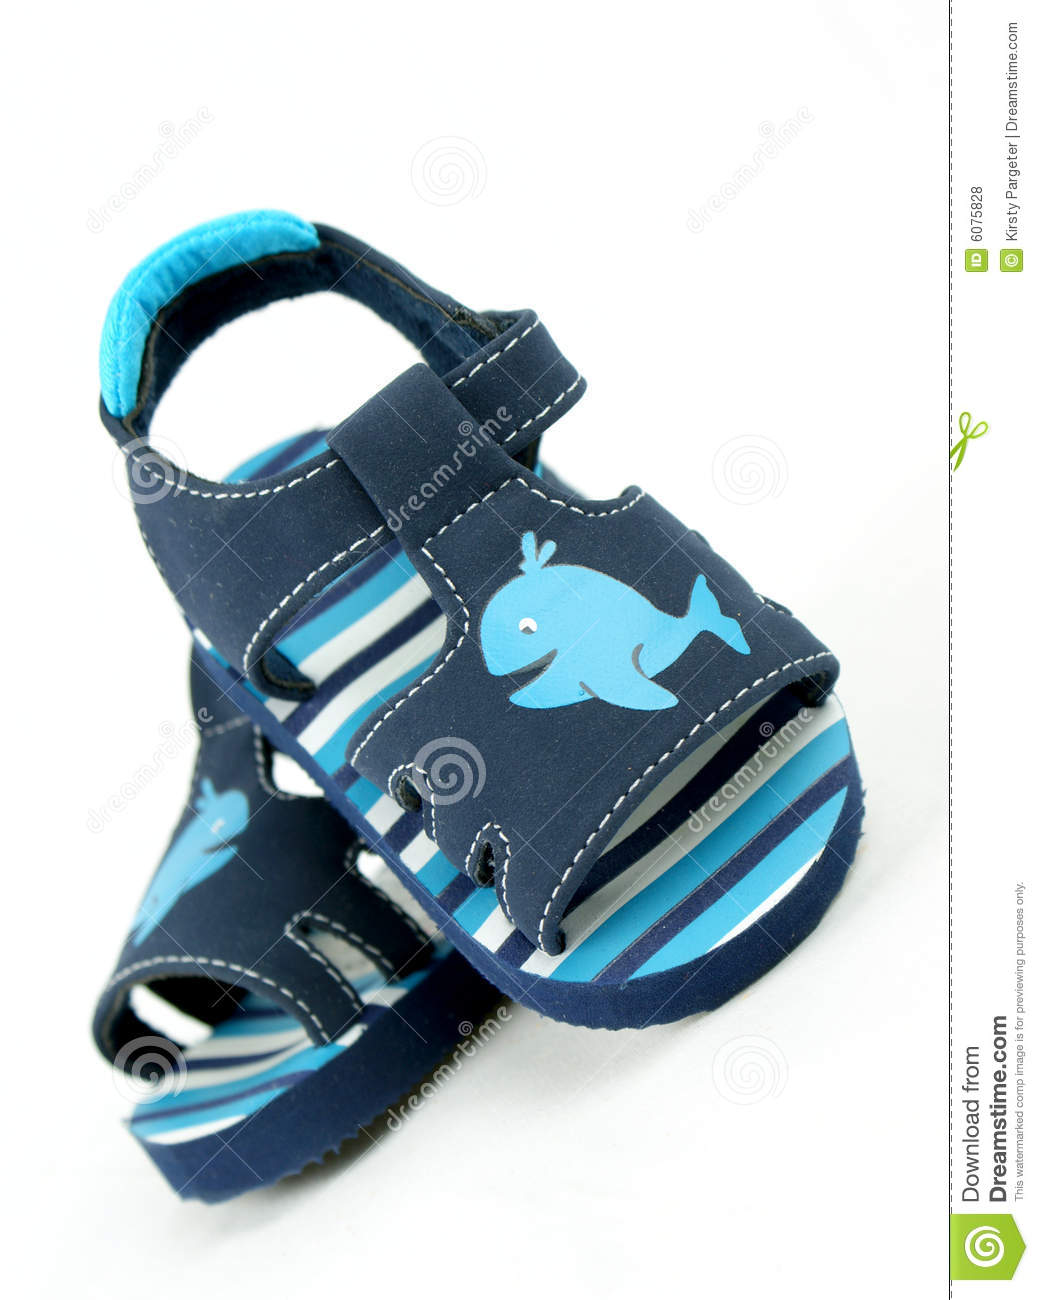 Shop for baby boy sandals online at Target. Free shipping on purchases over $35 and save 5% every day with your Target REDcard.